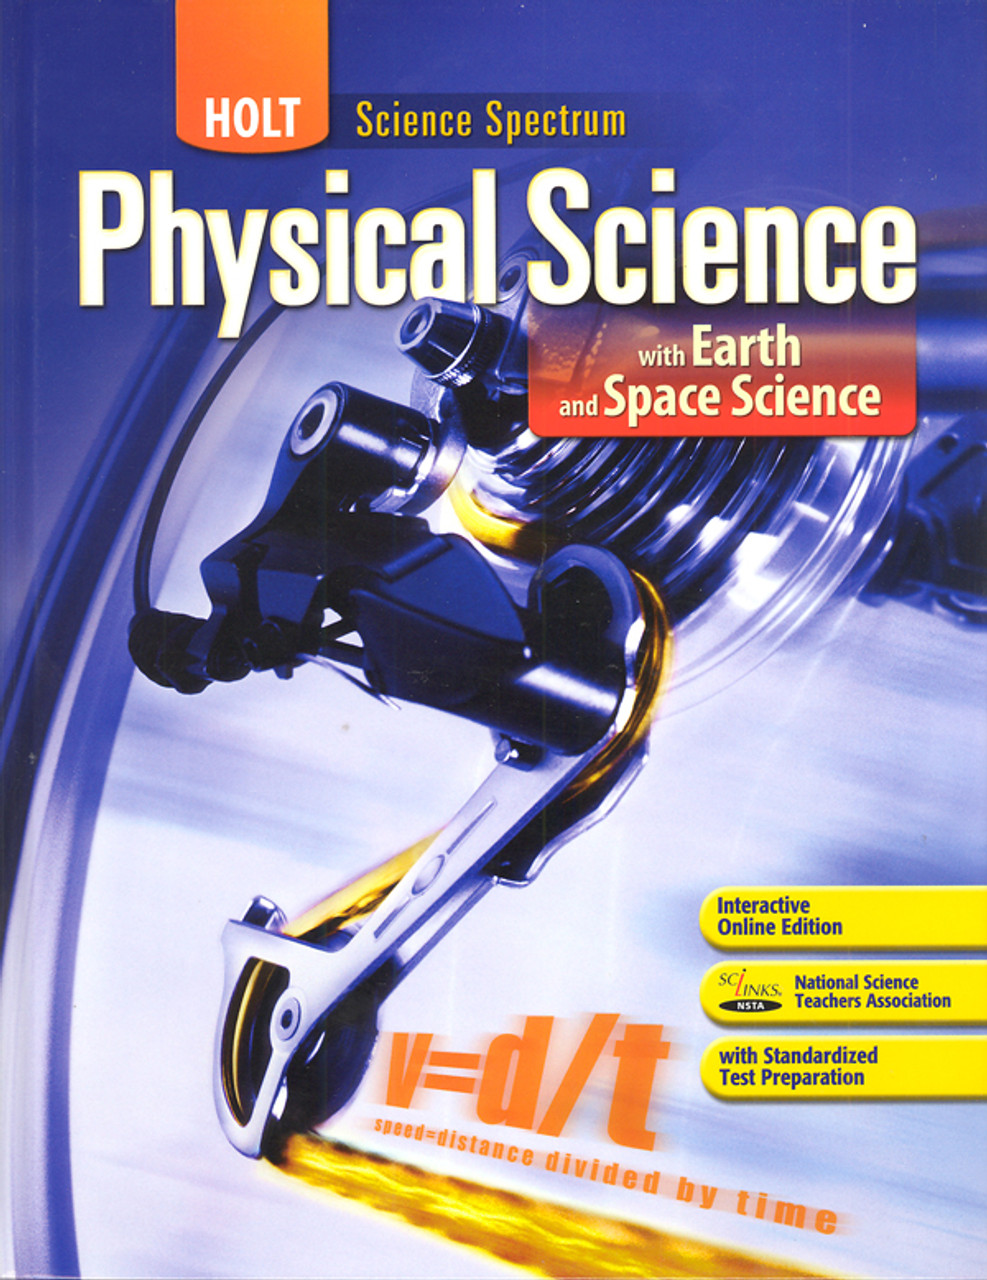 Holt Physical Science With Earth And Space Science Student Textbook